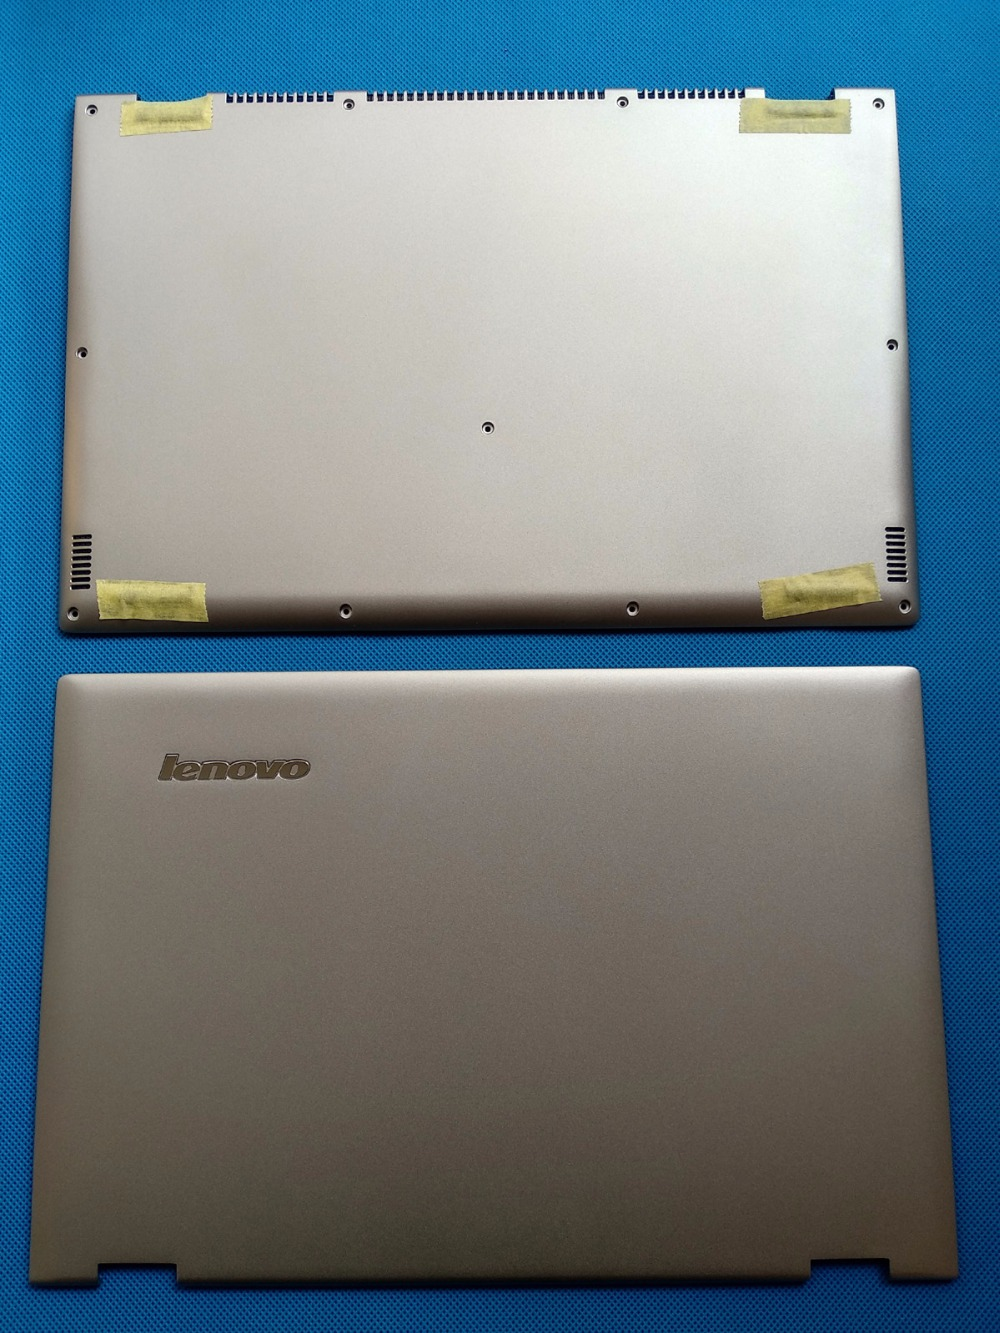 New Original Lenovo Ideapad Yoga 2 Pro 13 LCD Back Rear Lid Cover+ Base Cover Bottom Lower Case AM0S9000310 AM0S9000210 silvery new for lenovo ideapad yoga 13 bottom chassis cover lower case base shell orange w speaker l